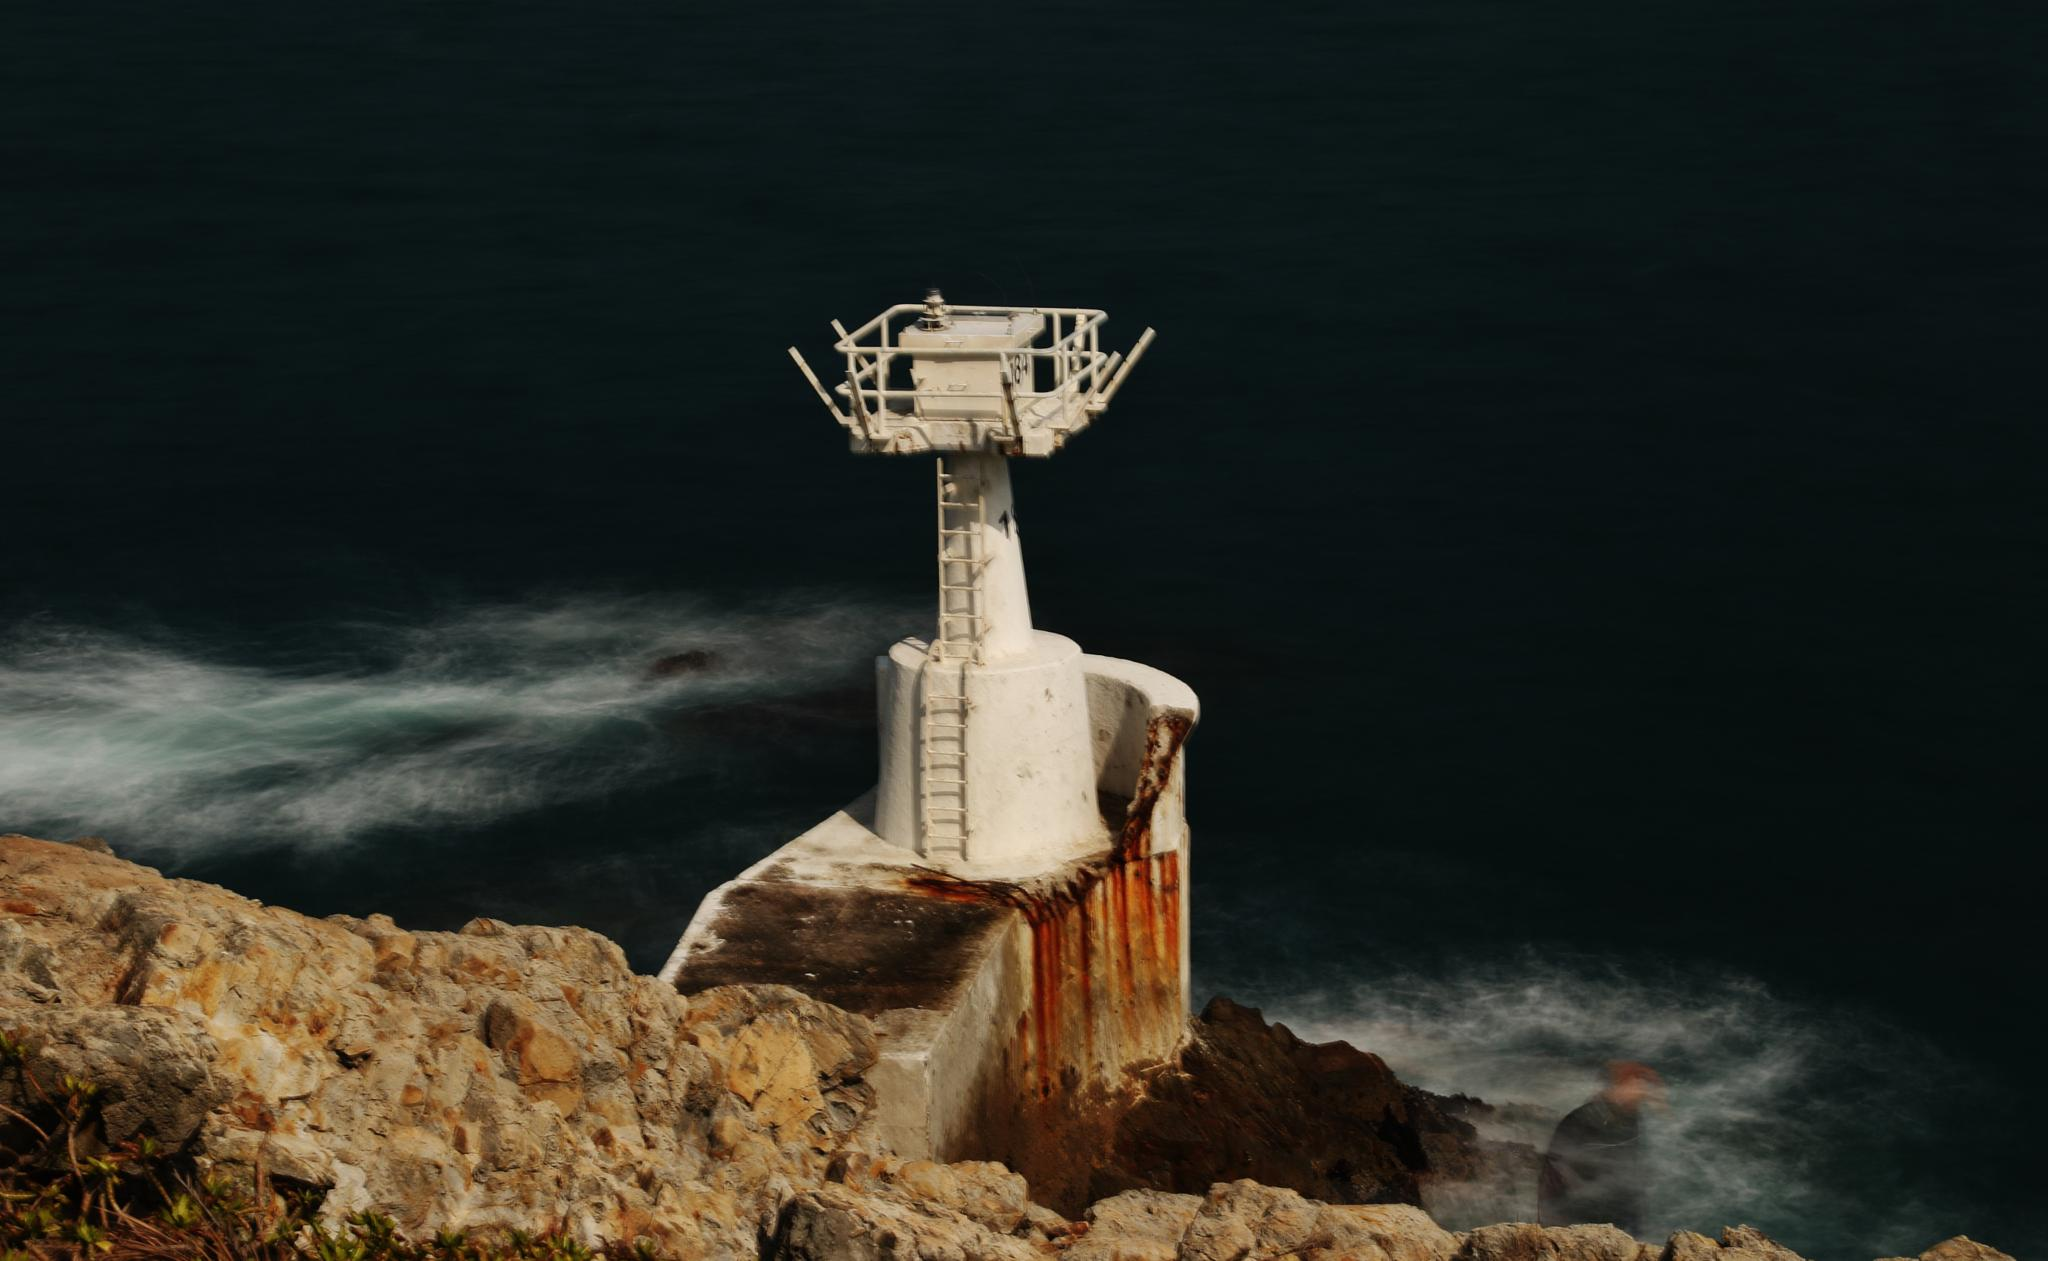 The wave and the lighting tower took with slow speed. by samip75